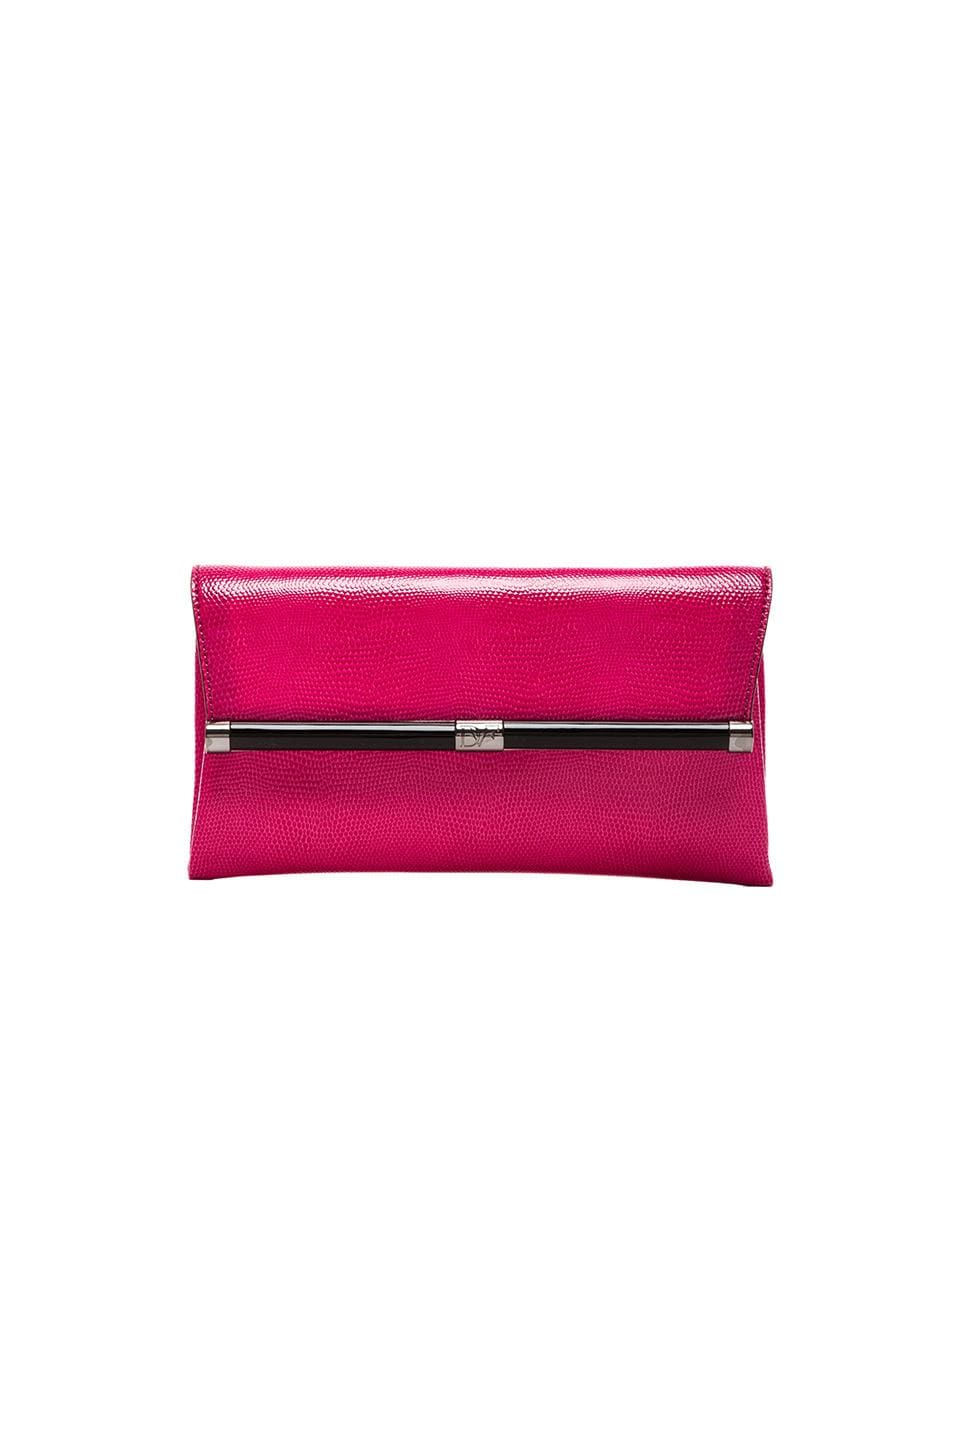 Diane von Furstenberg Envelope Embossed Leather Clutch in Raspberry